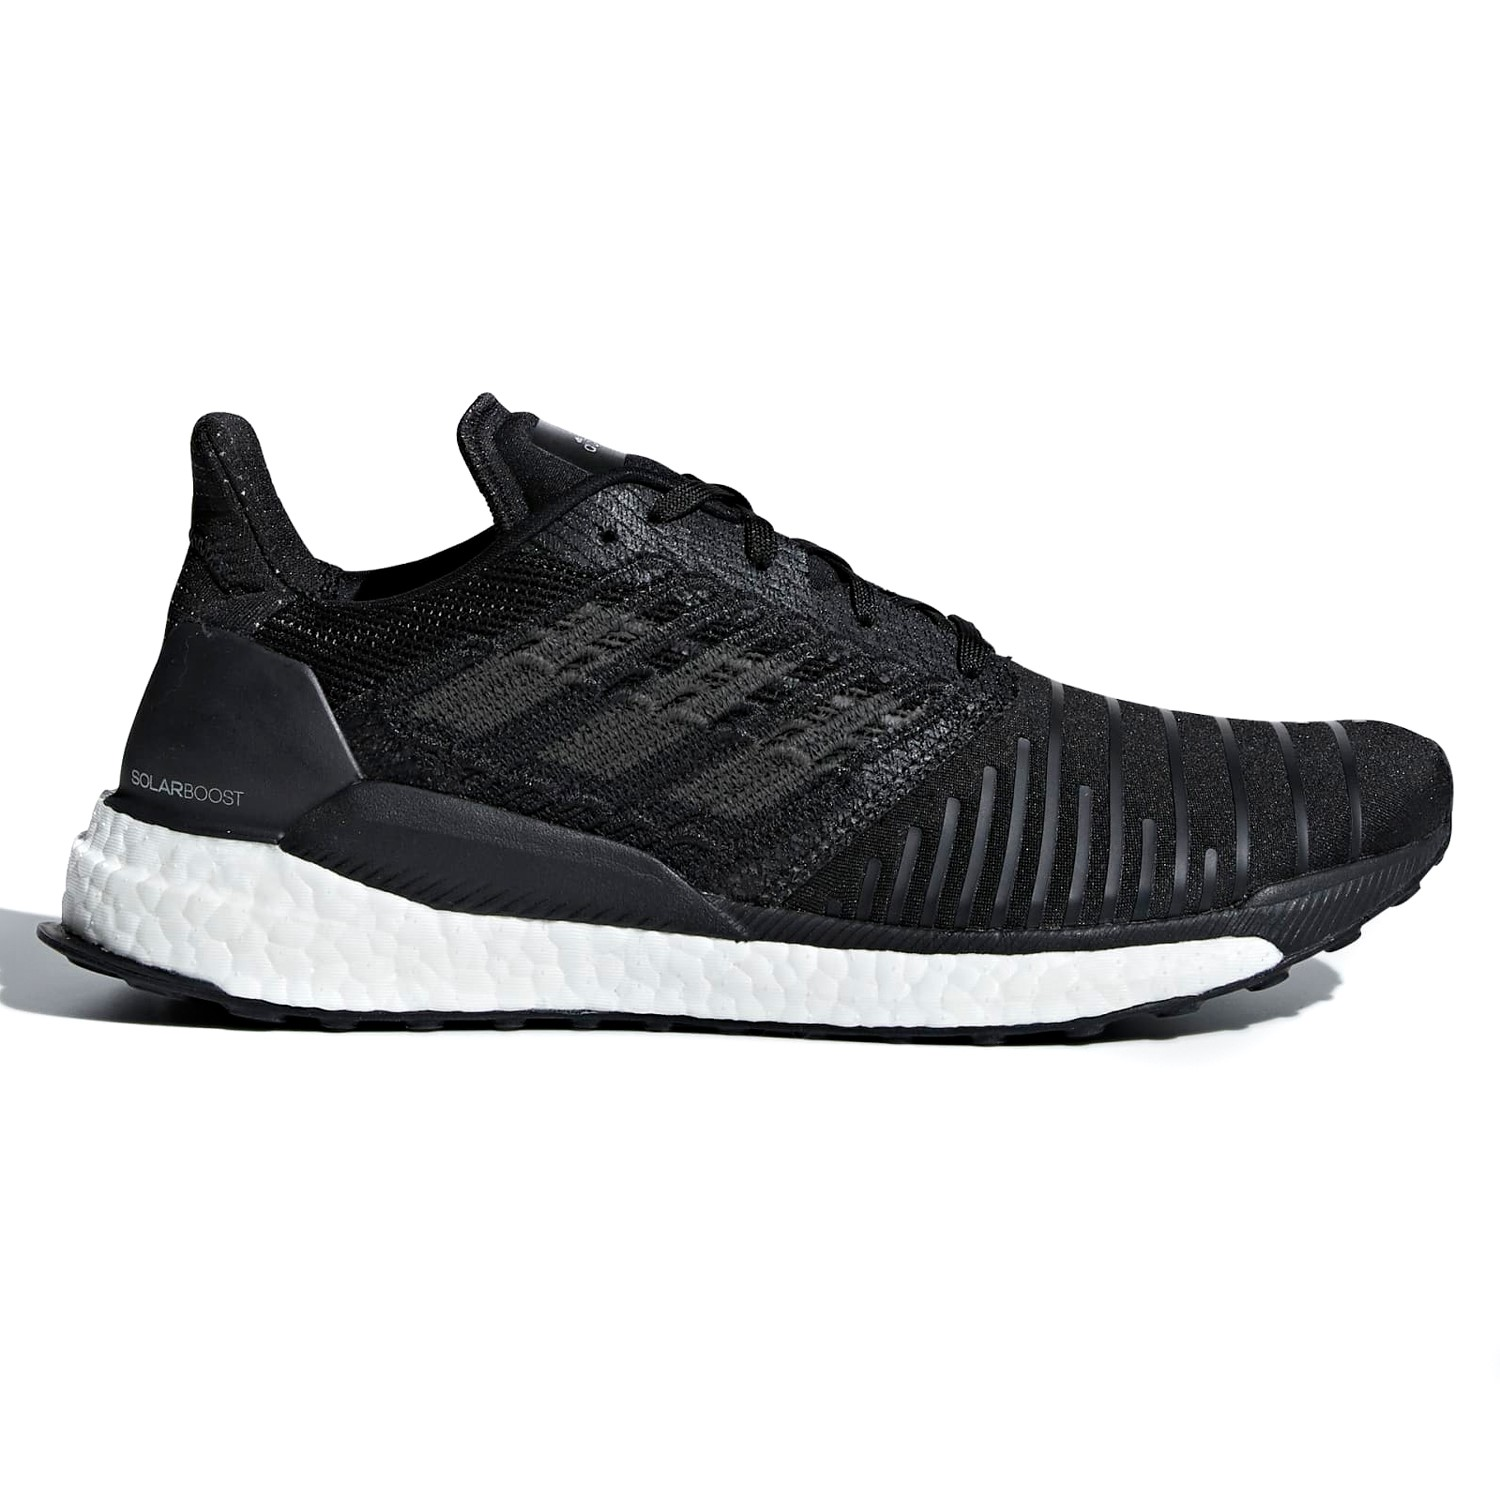 6e57dec0e2ca2 Adidas Solar Boost - Womens Running Shoes - Core Black Grey Footwear White